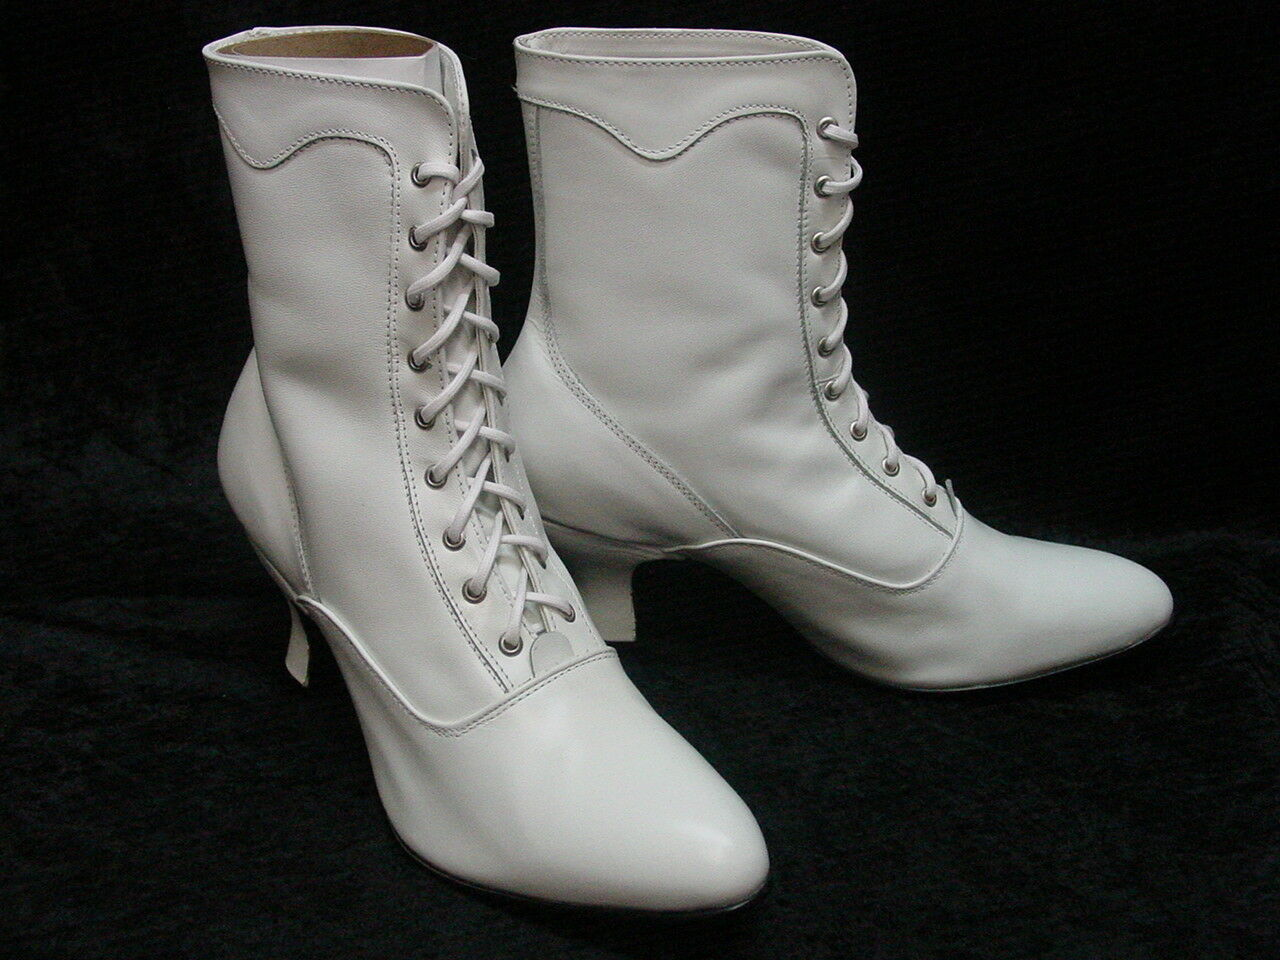 White Oak Tree Farms Veil Victorian Wedding lace up Granny boots size 9.5 NEW